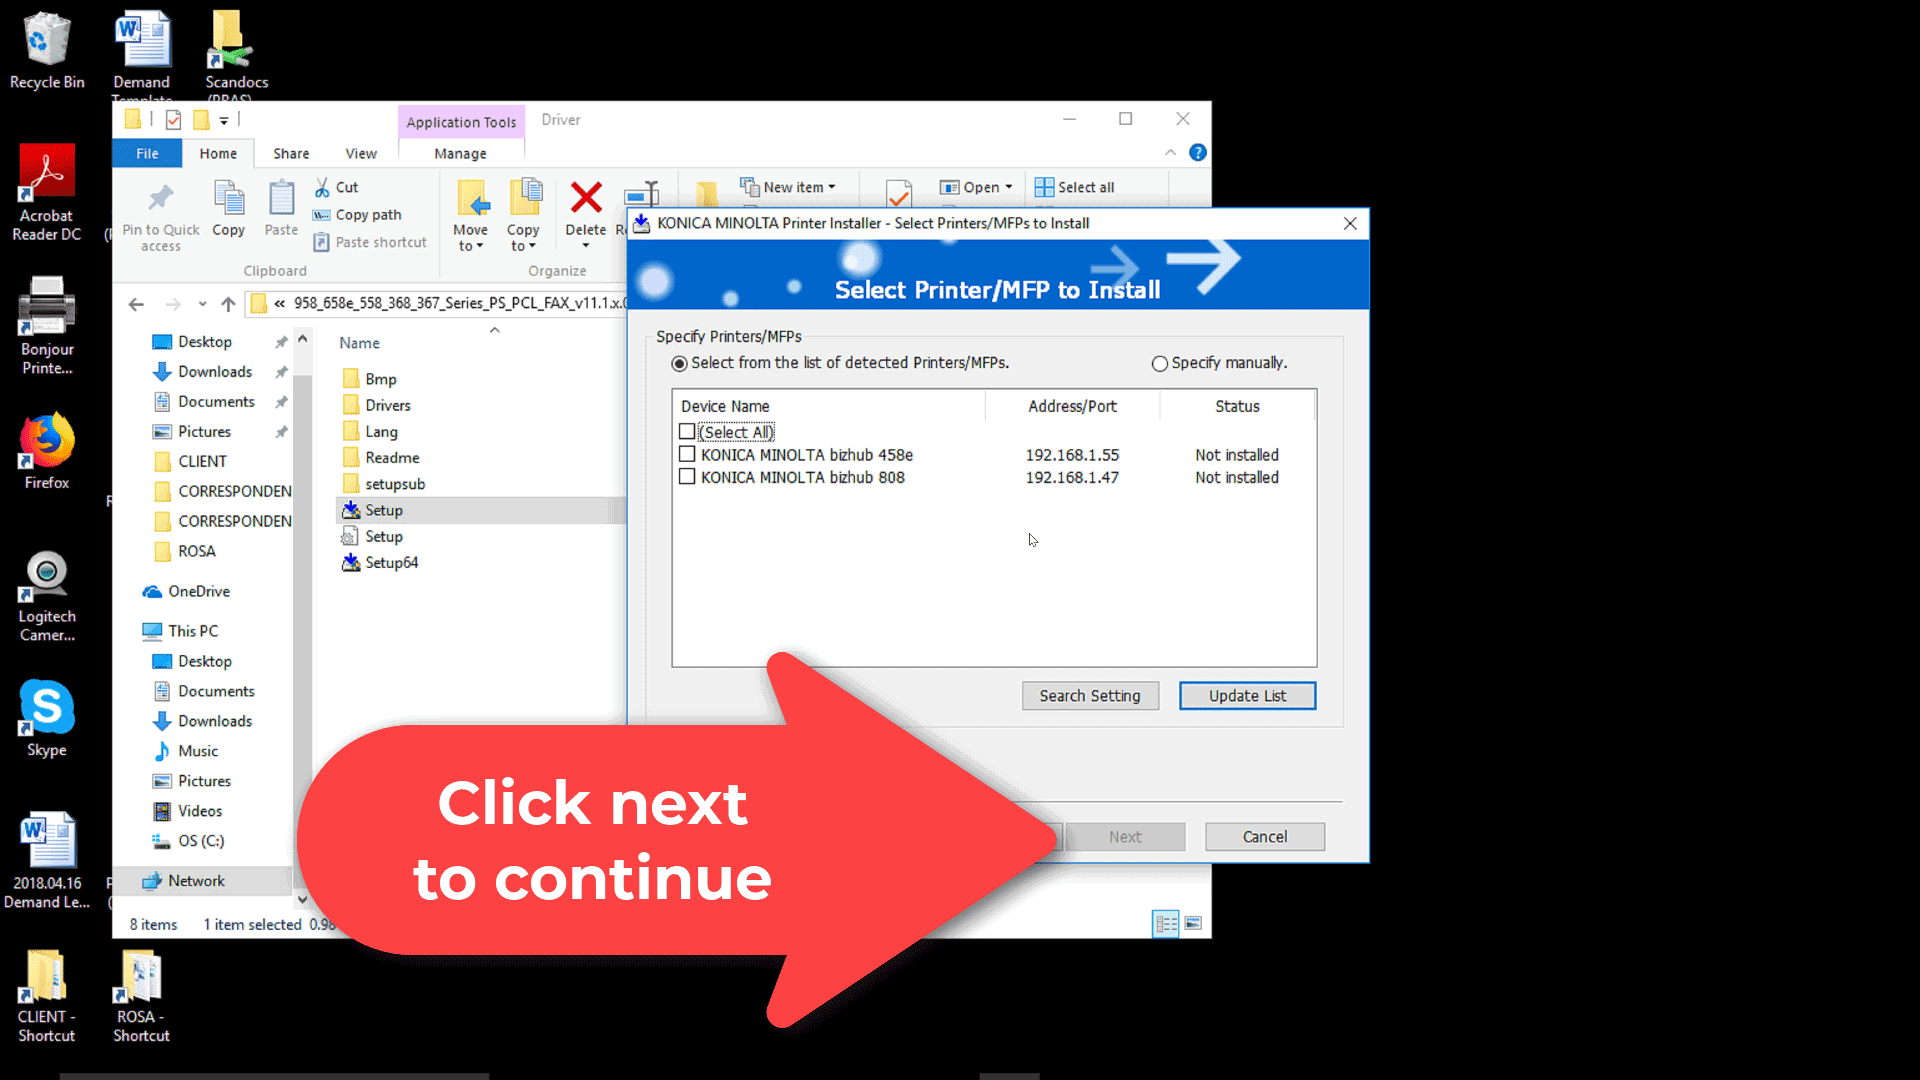 Click next to start the BizHub MFP network fax driver setup